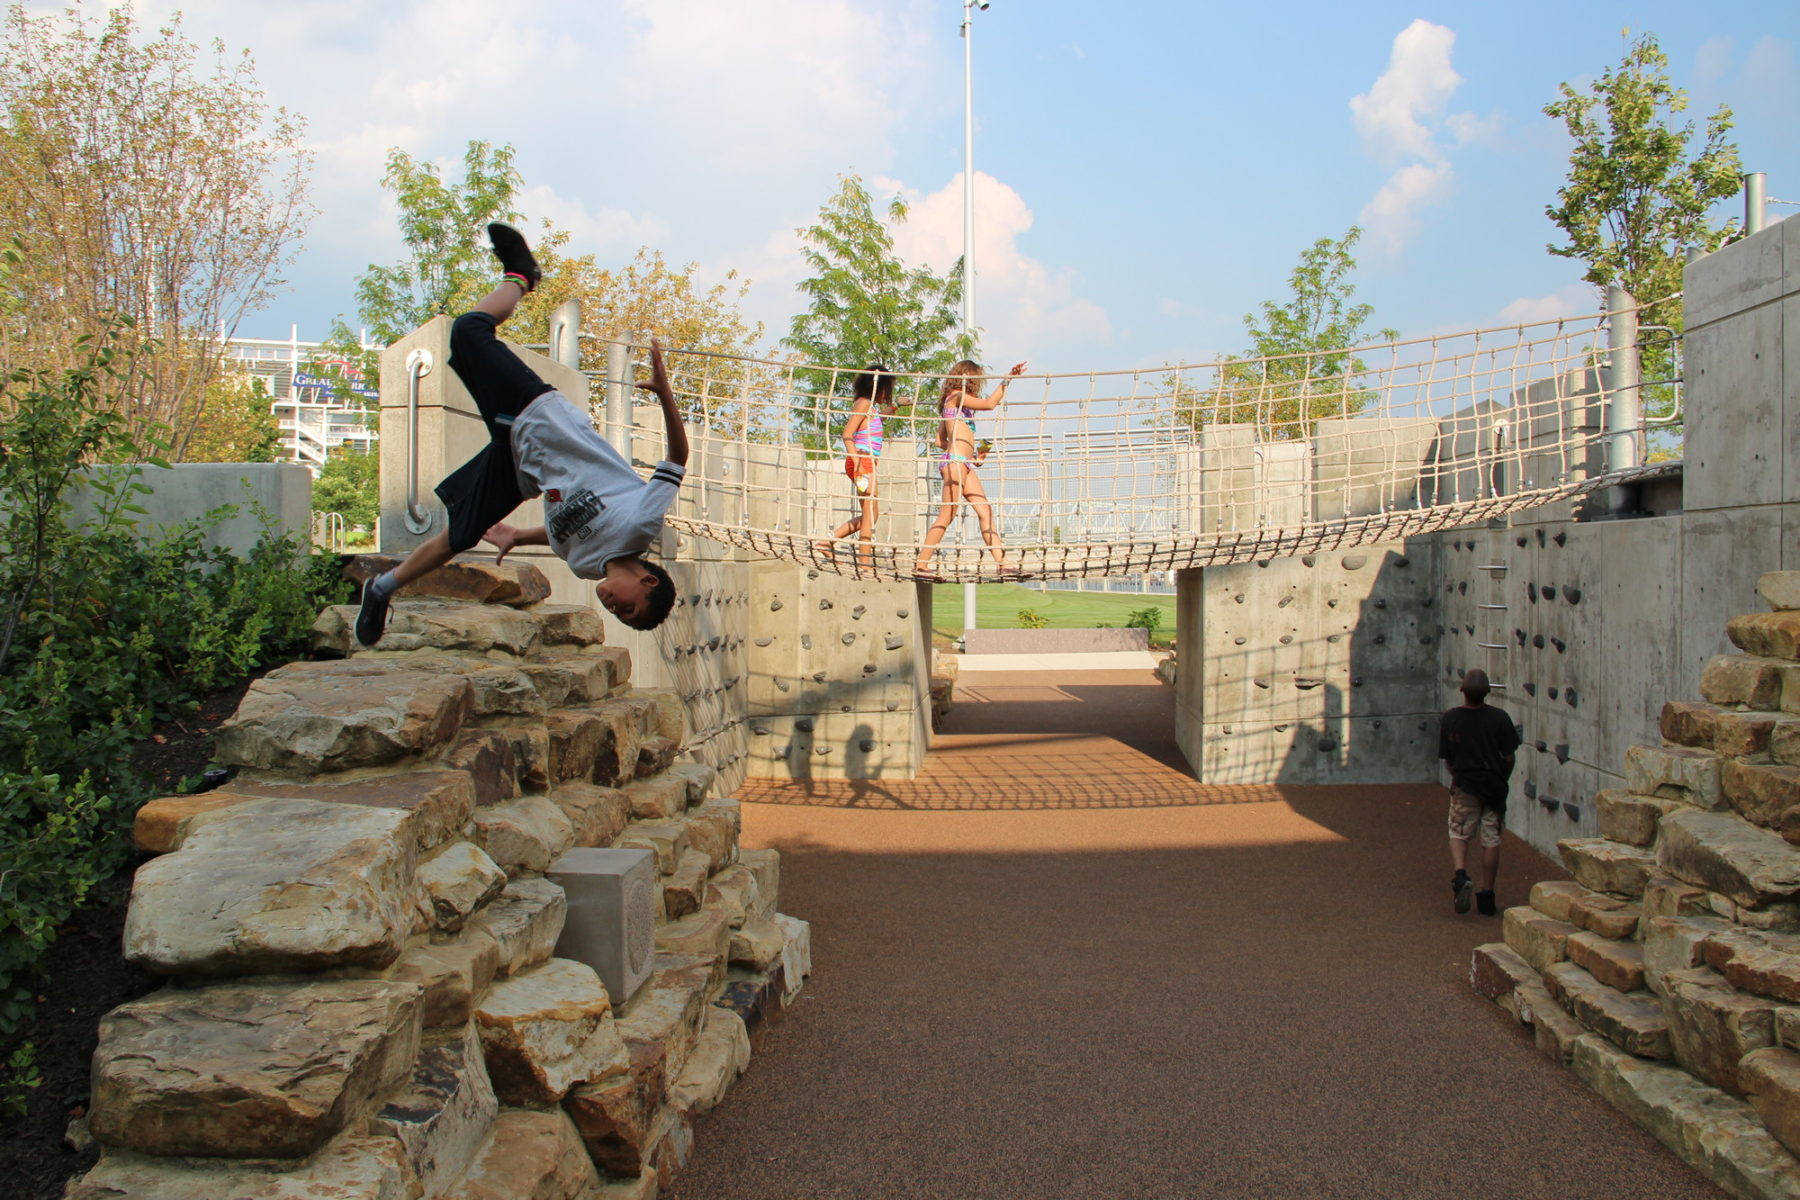 Kid doing a flip off of rock play structure